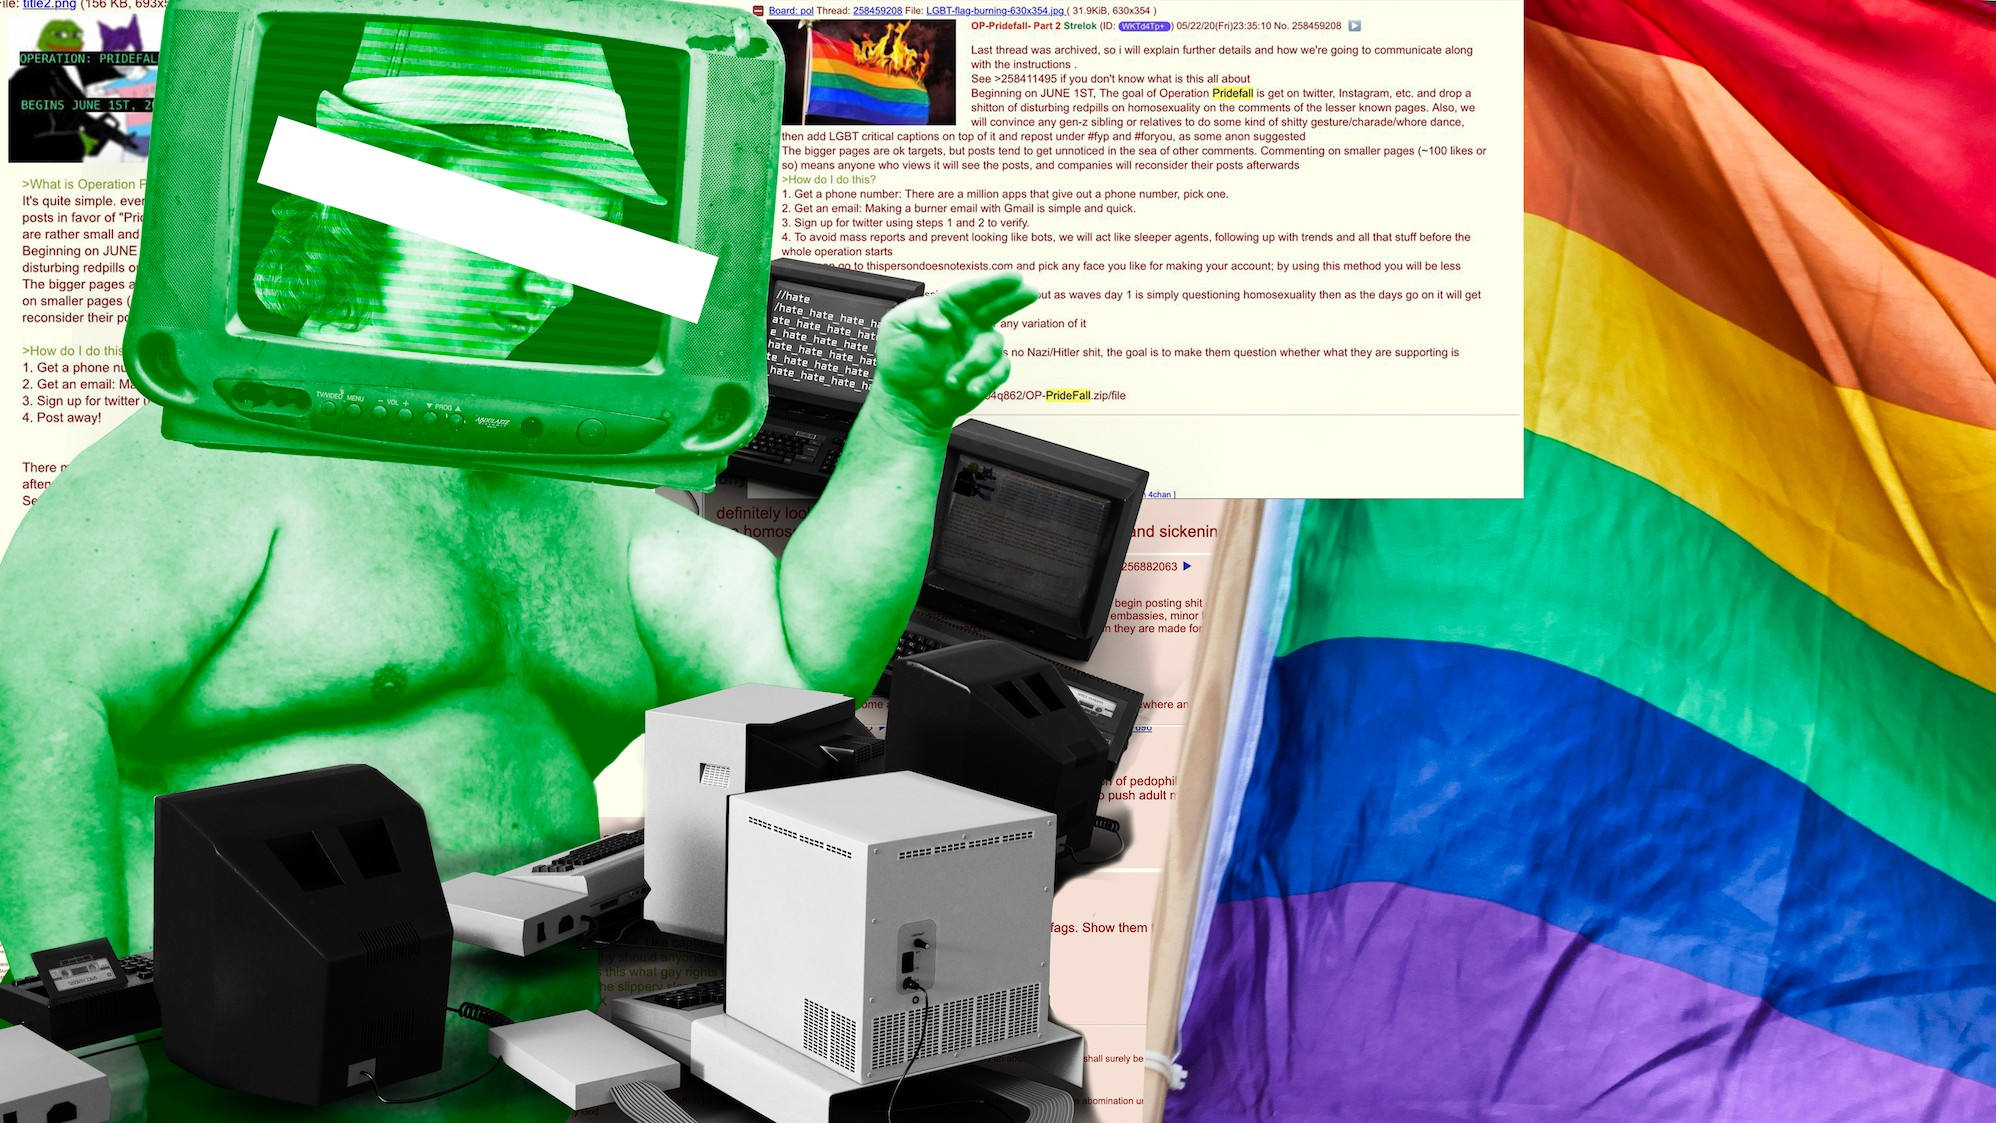 What Is Operation Pridefall 4chan S Anti Gay Pride 2020 Troll